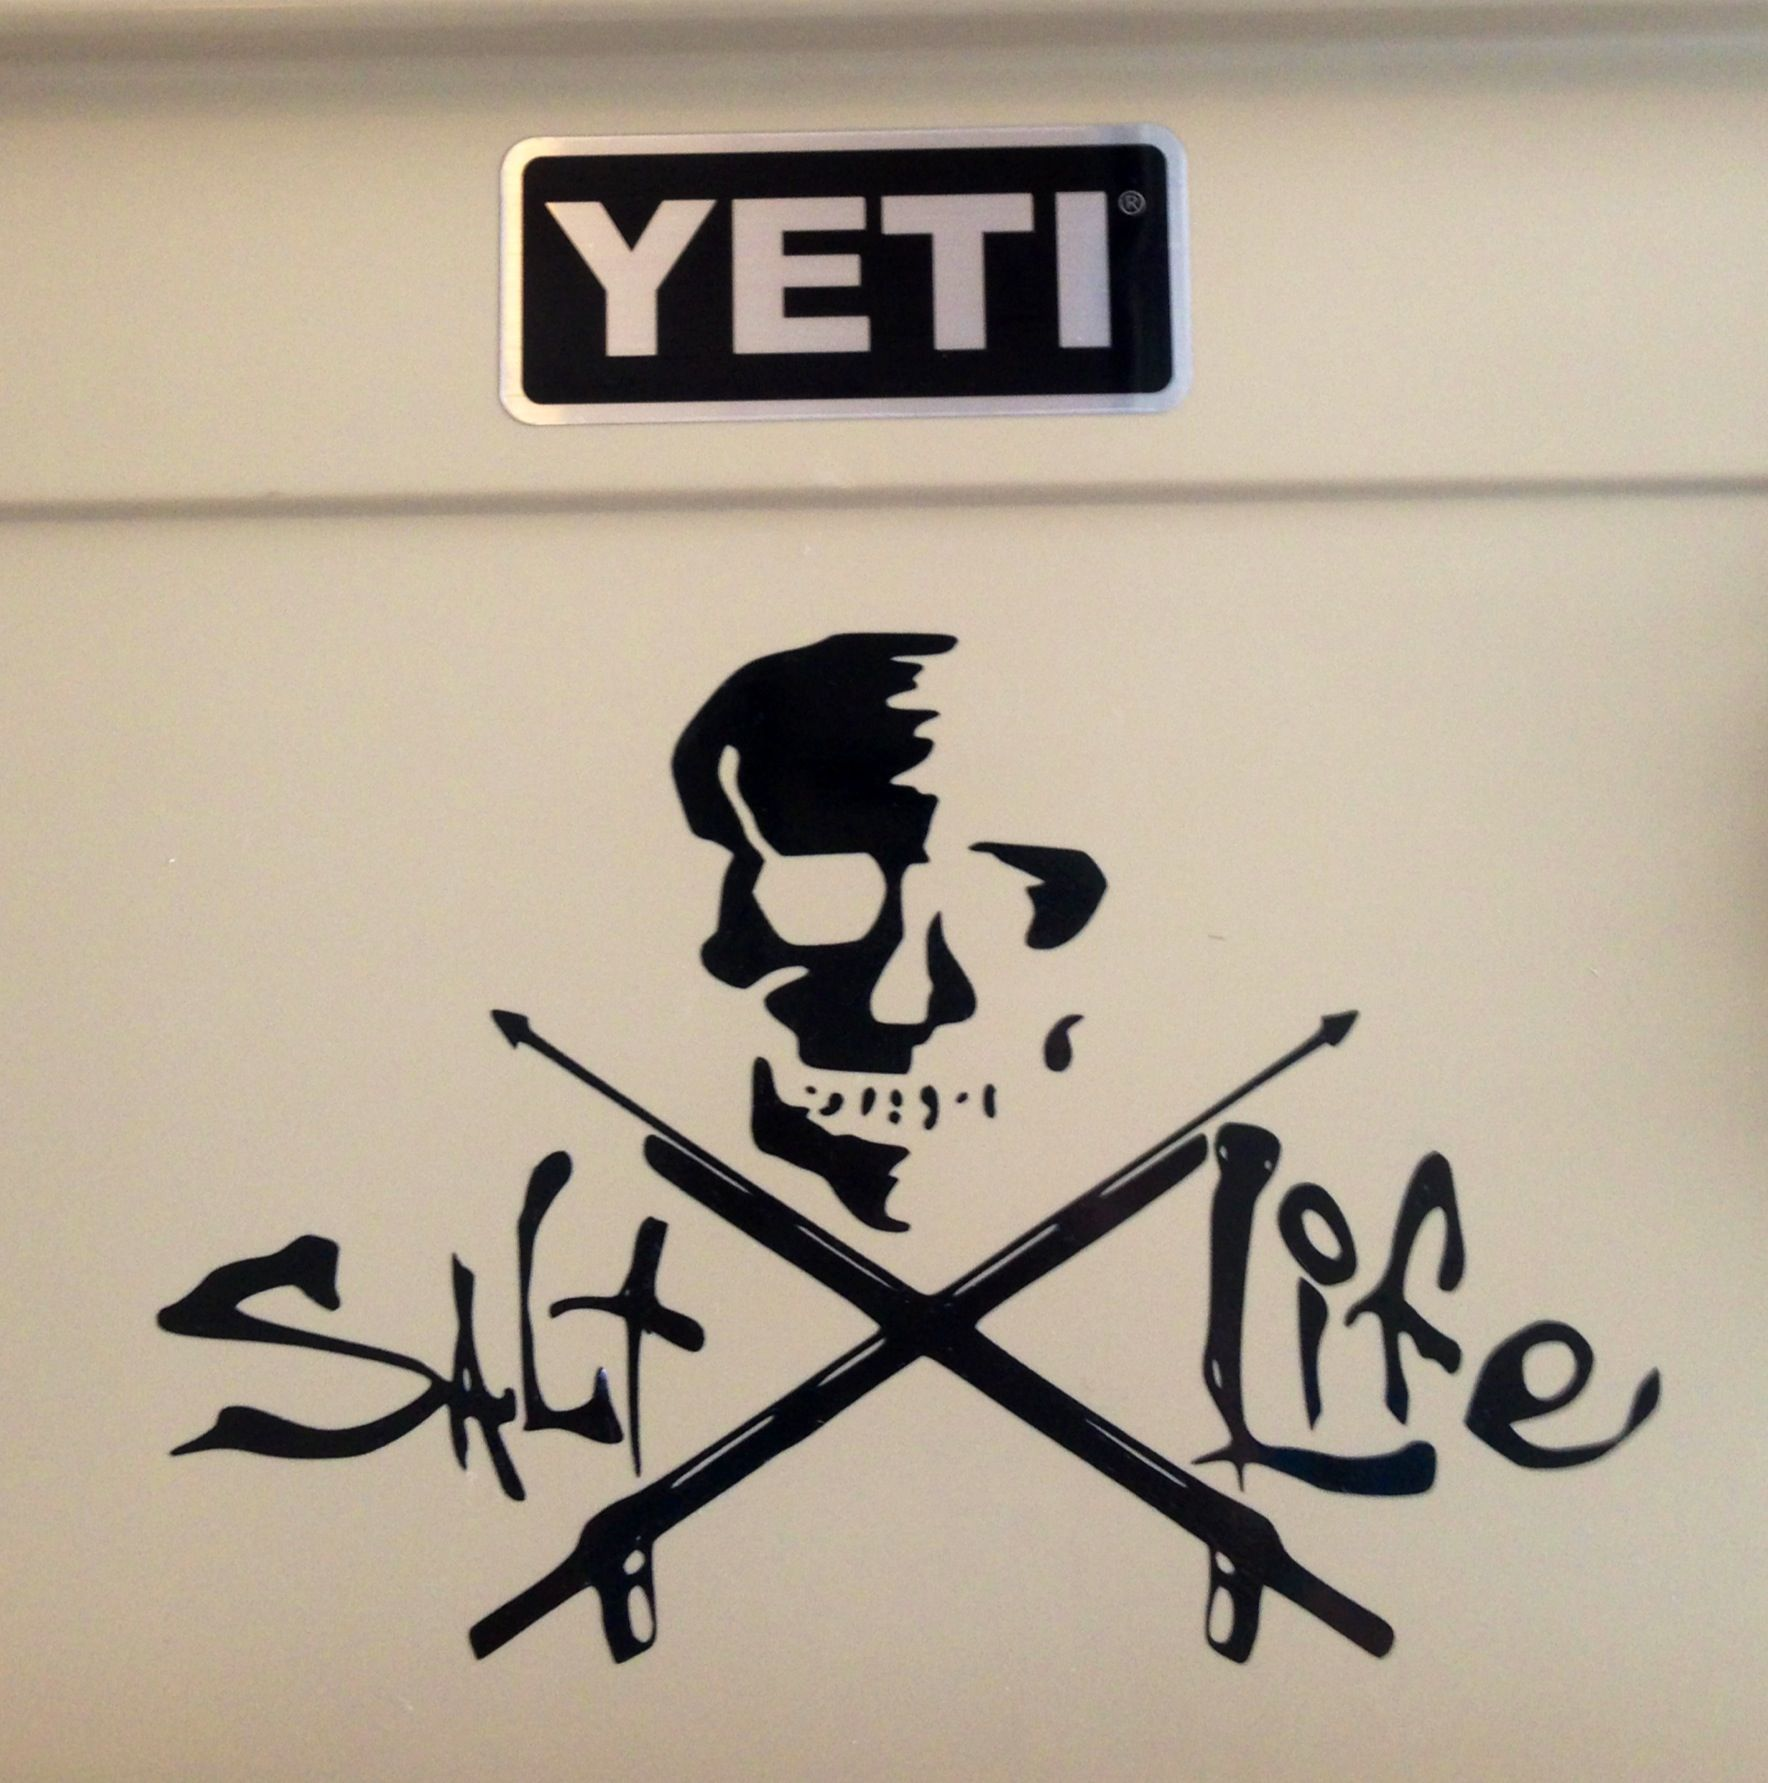 Back Window Salt Life Stickers For Your Car My Back Window Salt Life Stickers House By The Sea Summer Fun [ 2448 x 3264 Pixel ]